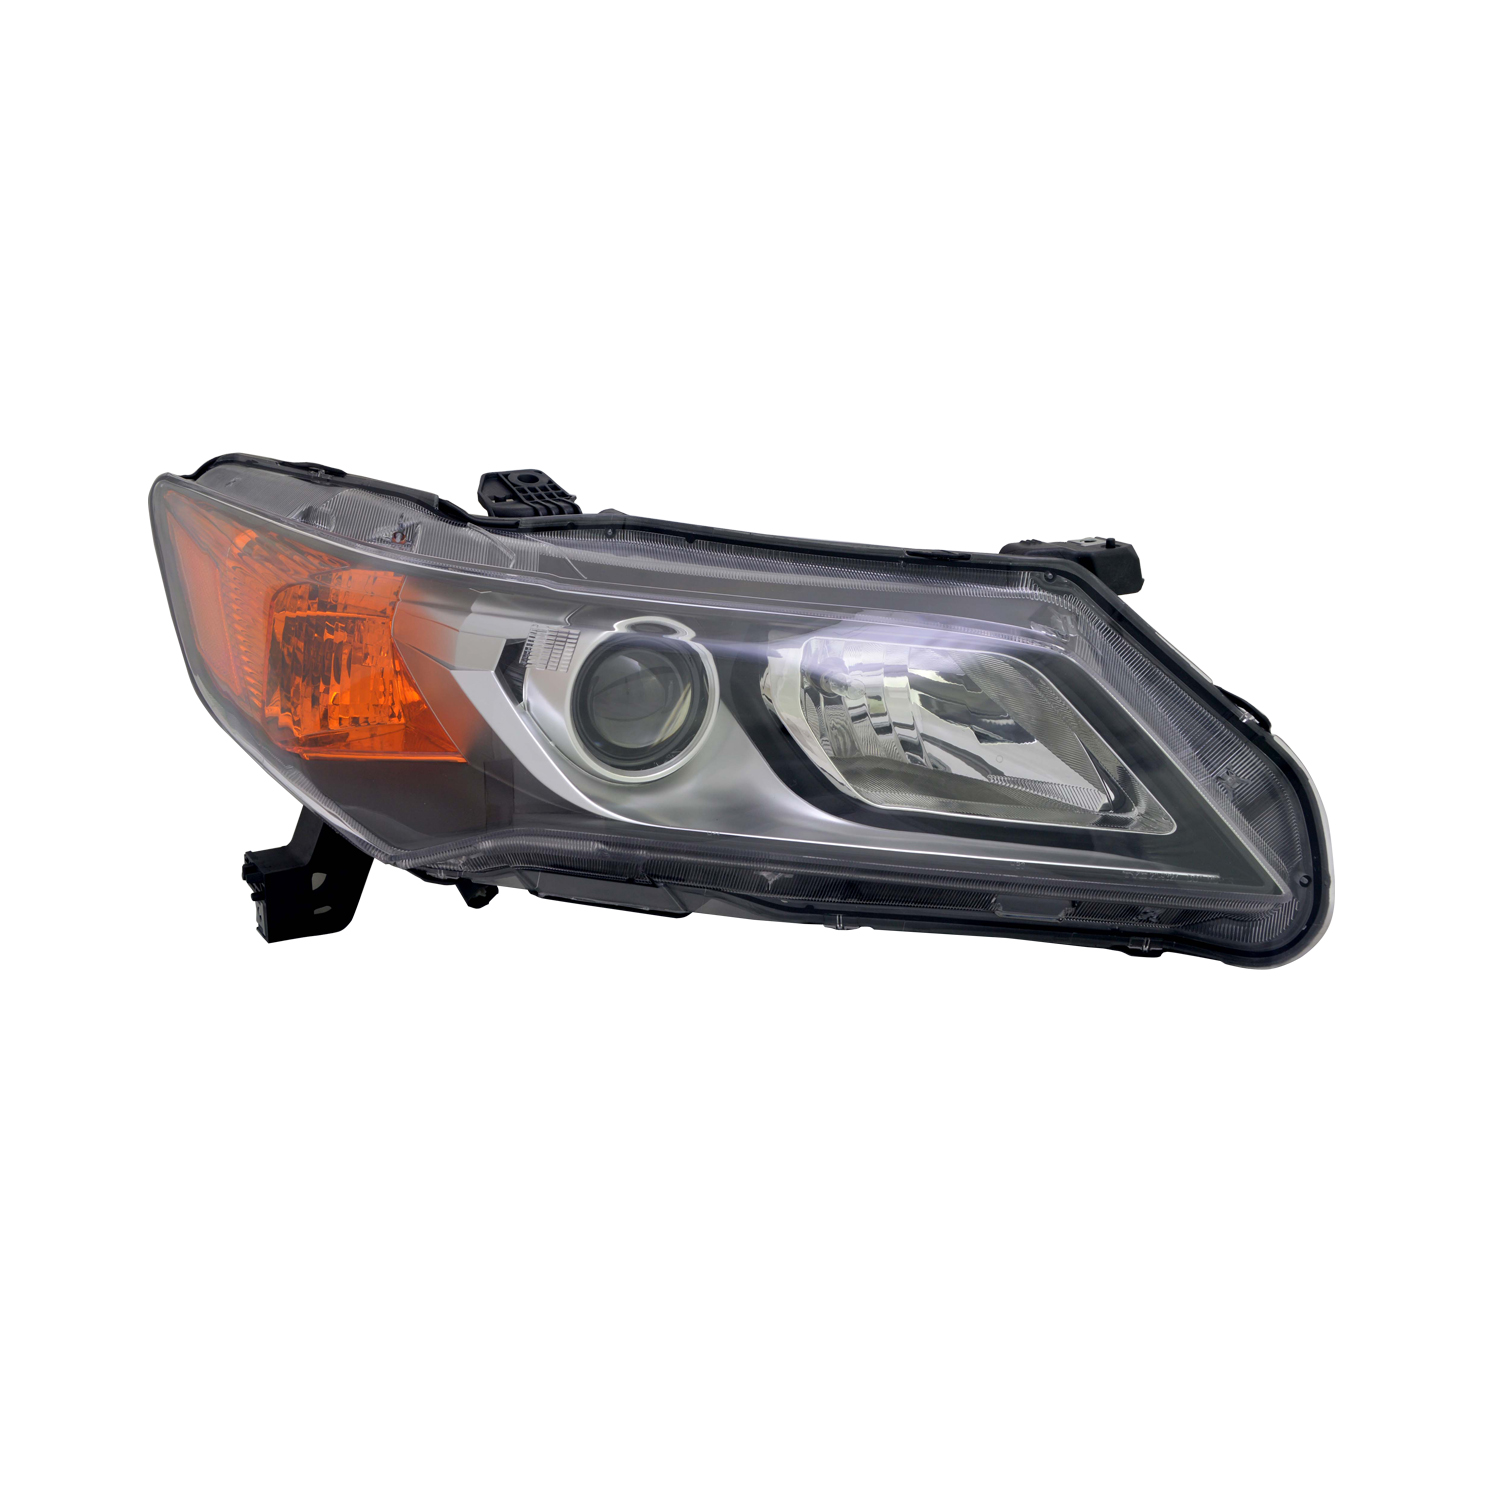 CPP AC2503121 Right Headlamp Assembly Composite For 13-15